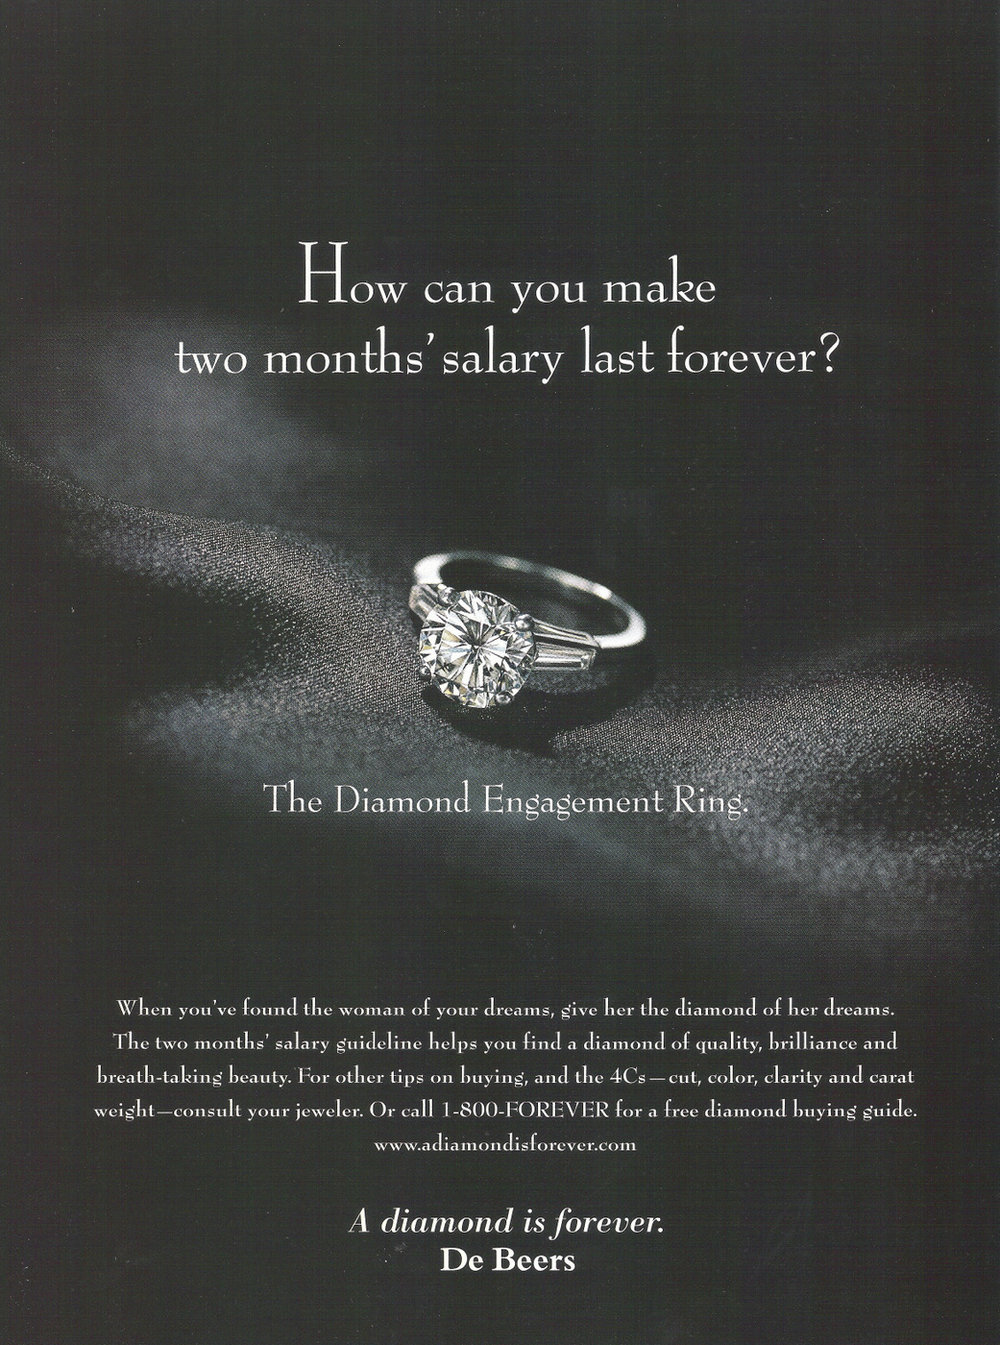 De Beers Diamonds Are Forever Ad